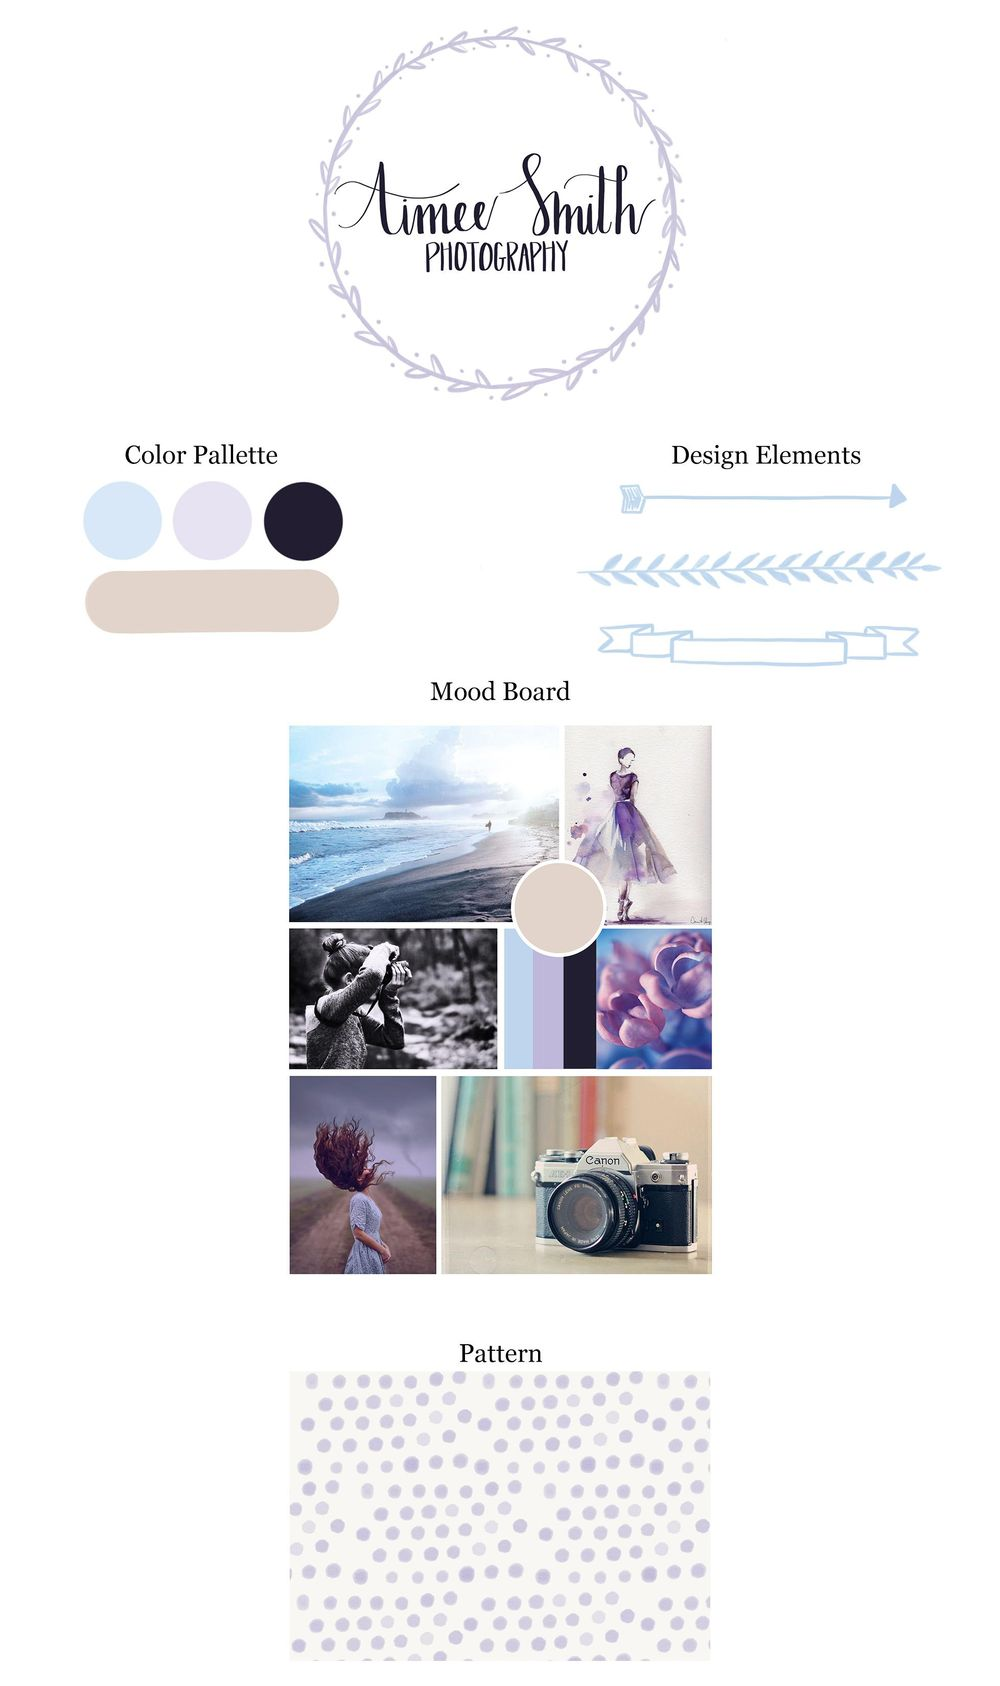 Branding for Aimee Smith Photography - image 1 - student project